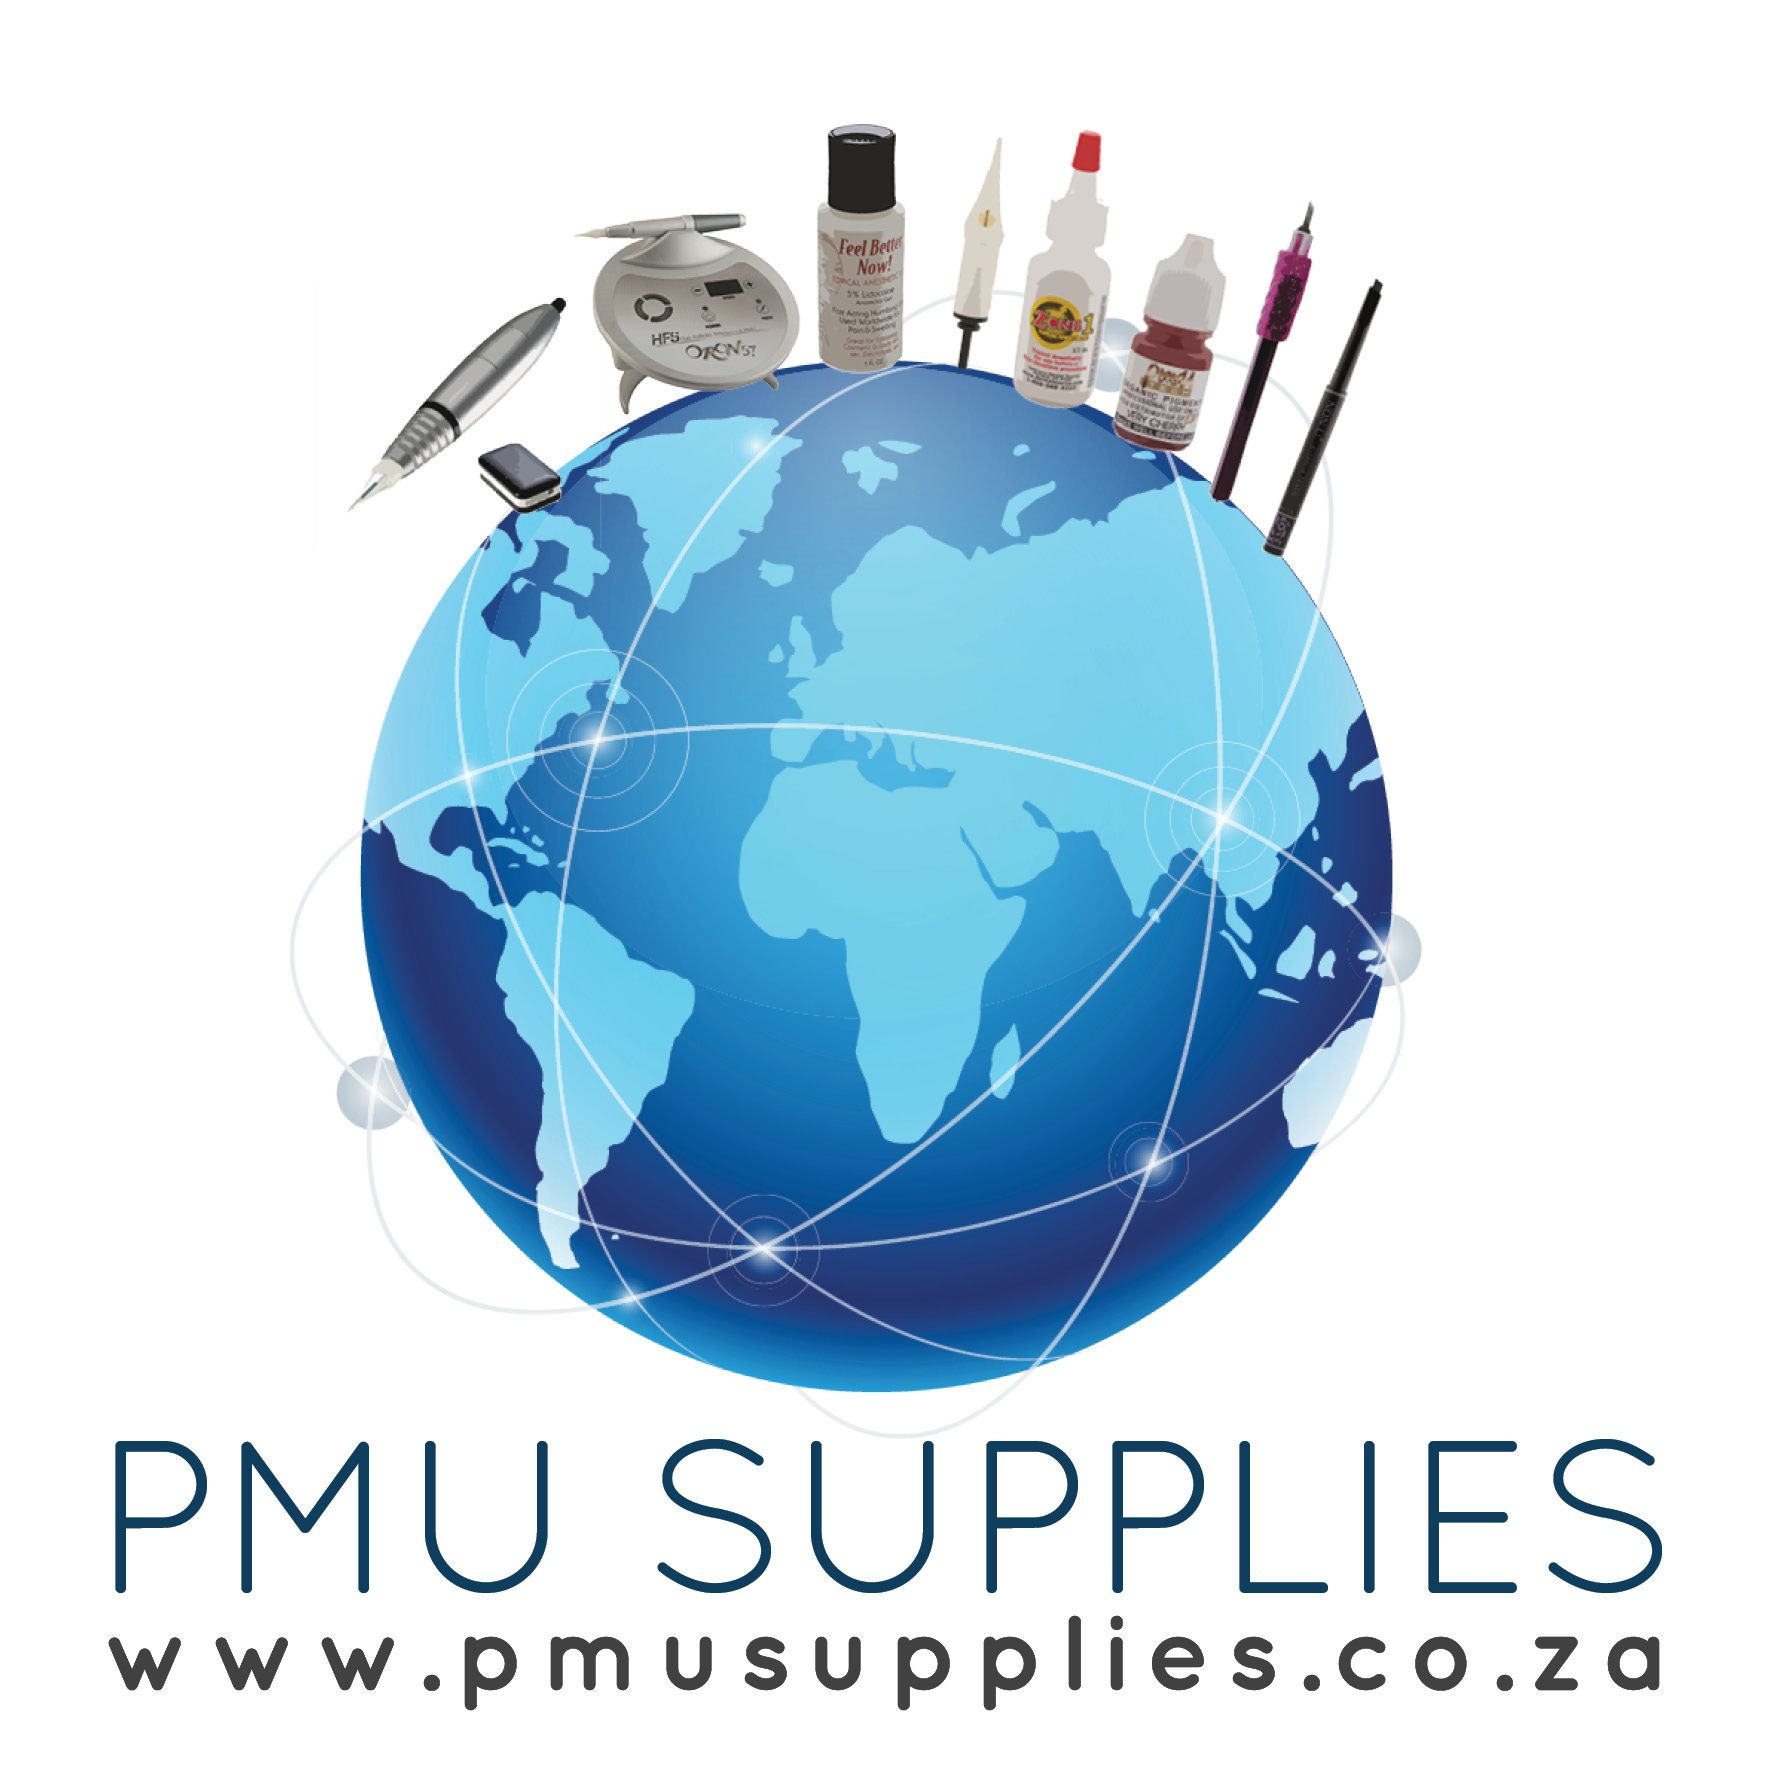 Home Permanent makeup supplies, Makeup supplies